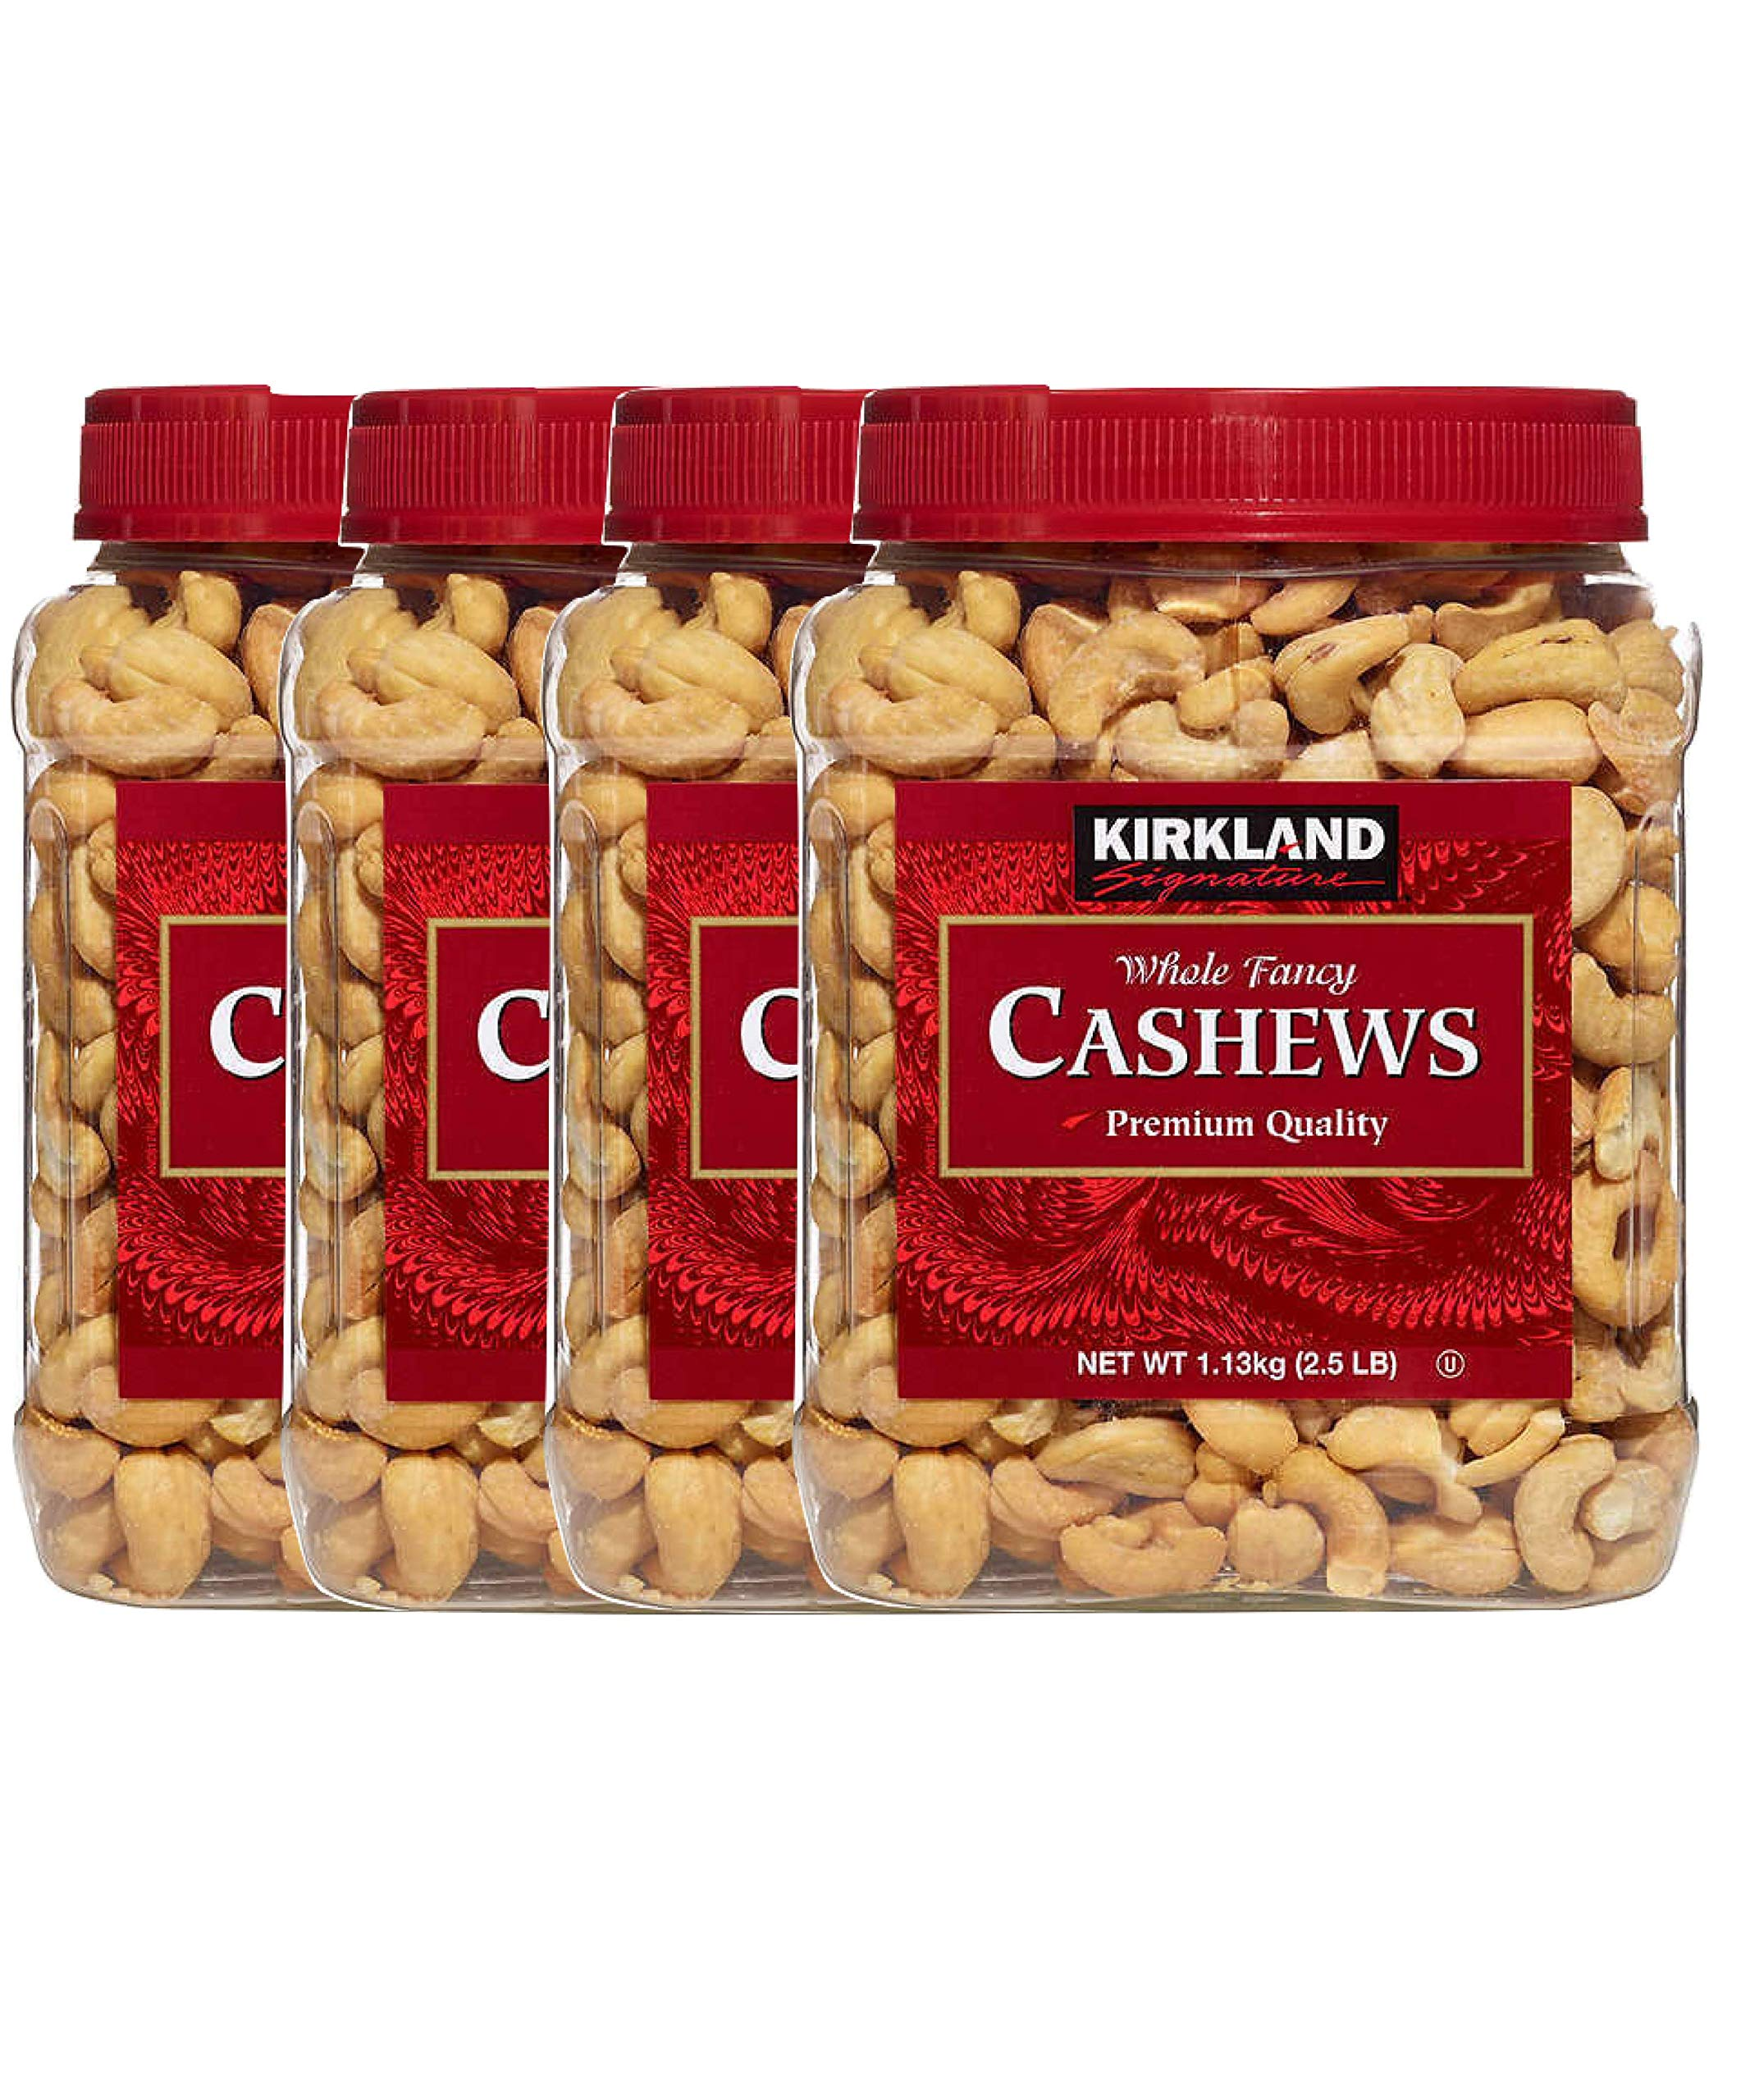 Kirkland Signature Whole Fancy Cashews Salted and Roasted (Pack of 4)